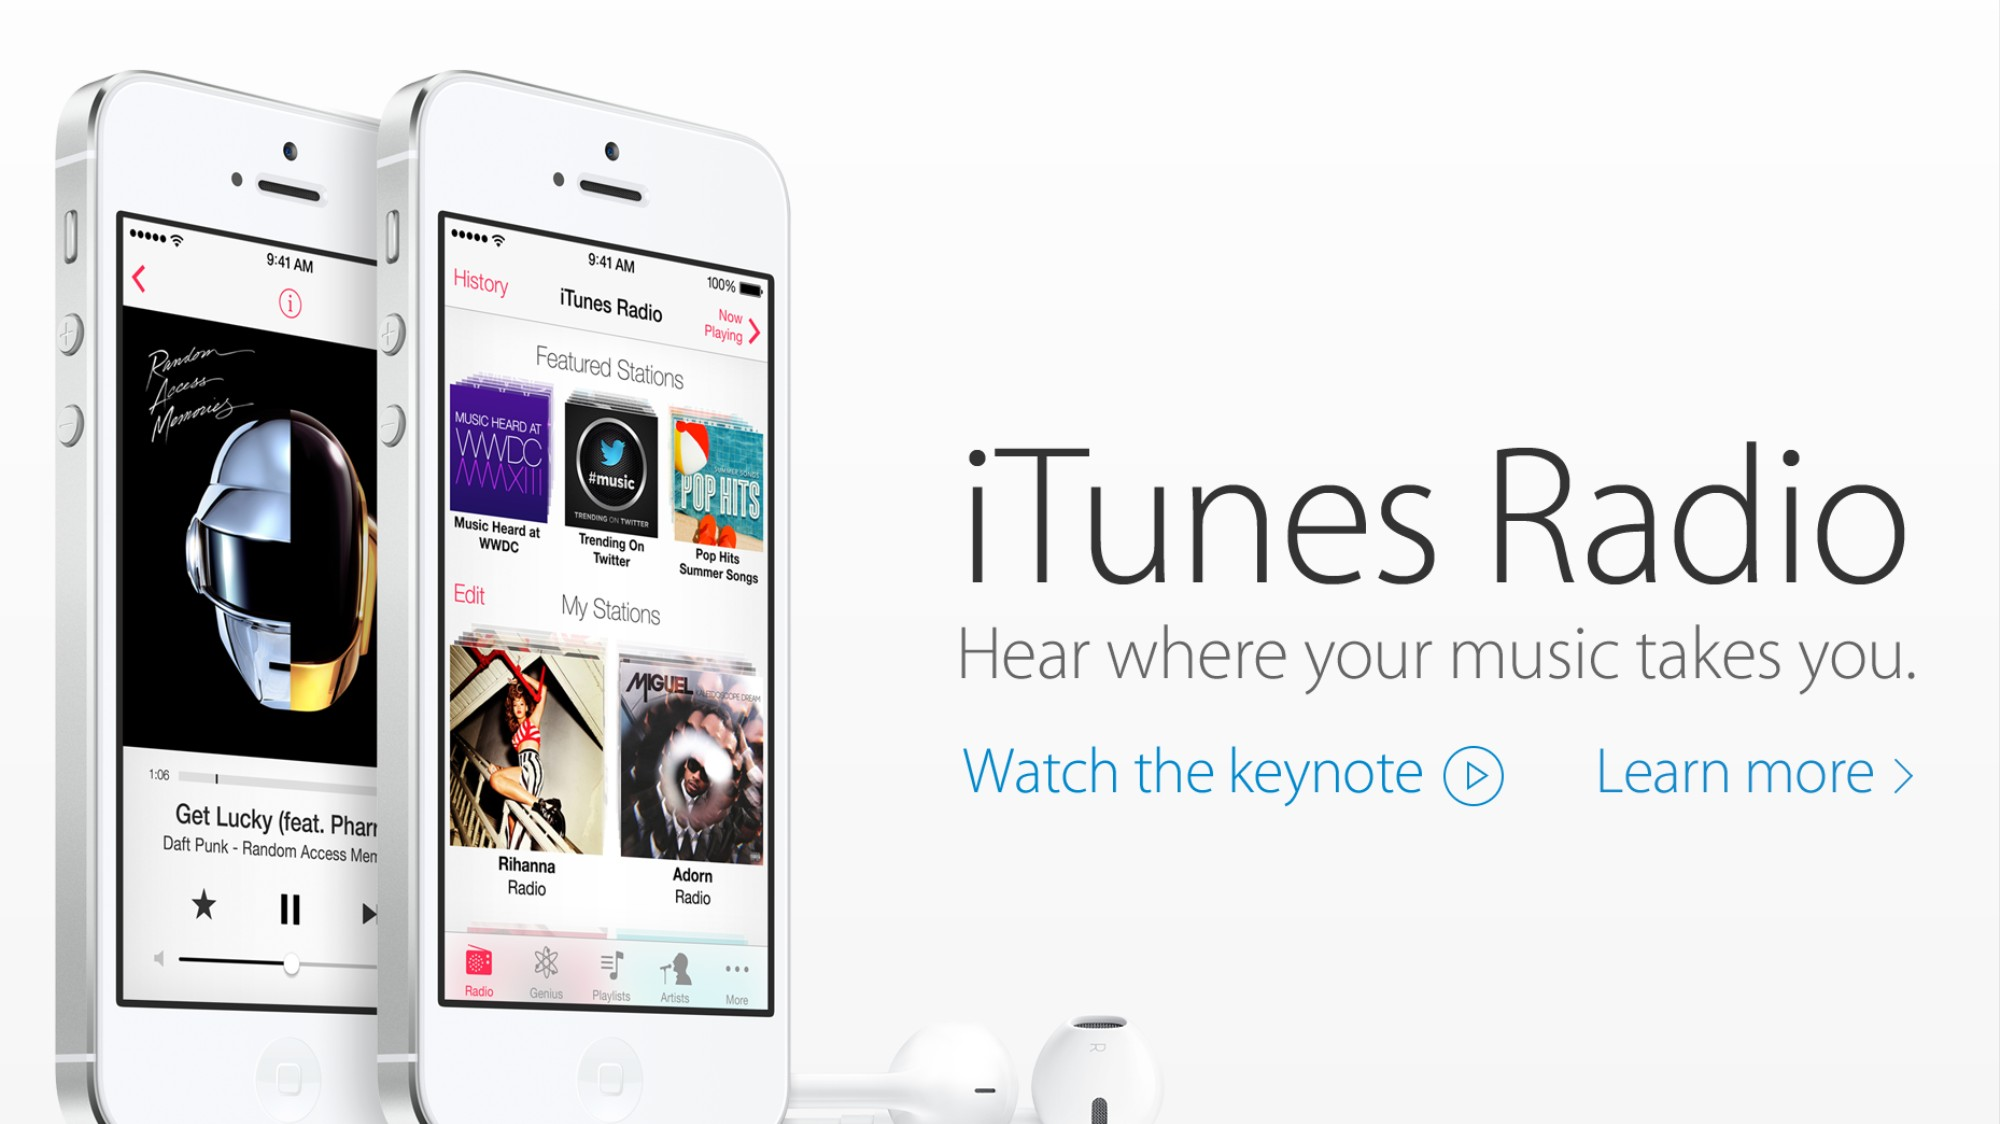 Apple Puts Previously Free iTunes Radio Service Behind Paywall - VICE